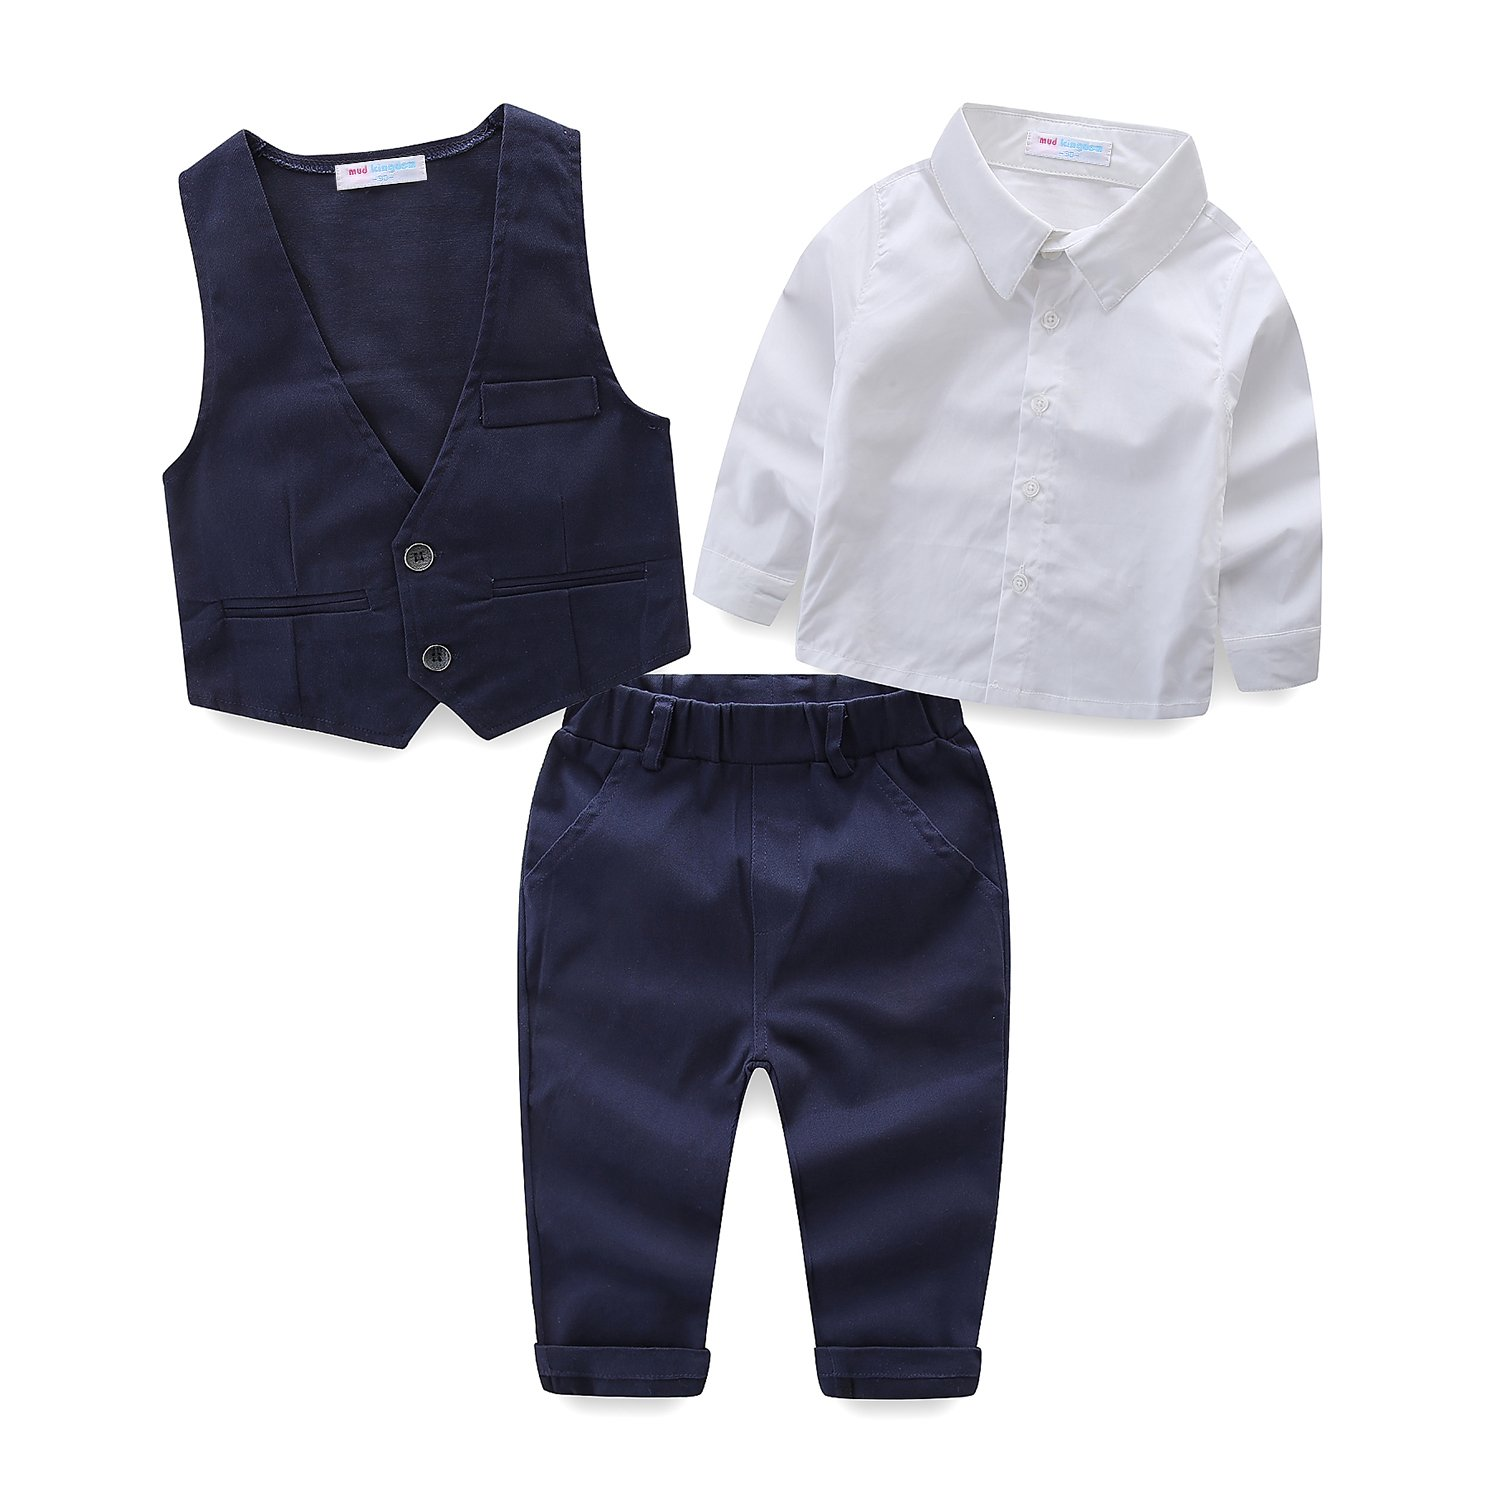 Mud Kingdom Toddler Boys Suits for Weddings White Shirts, Vests and Pants Clothes Sets 2T